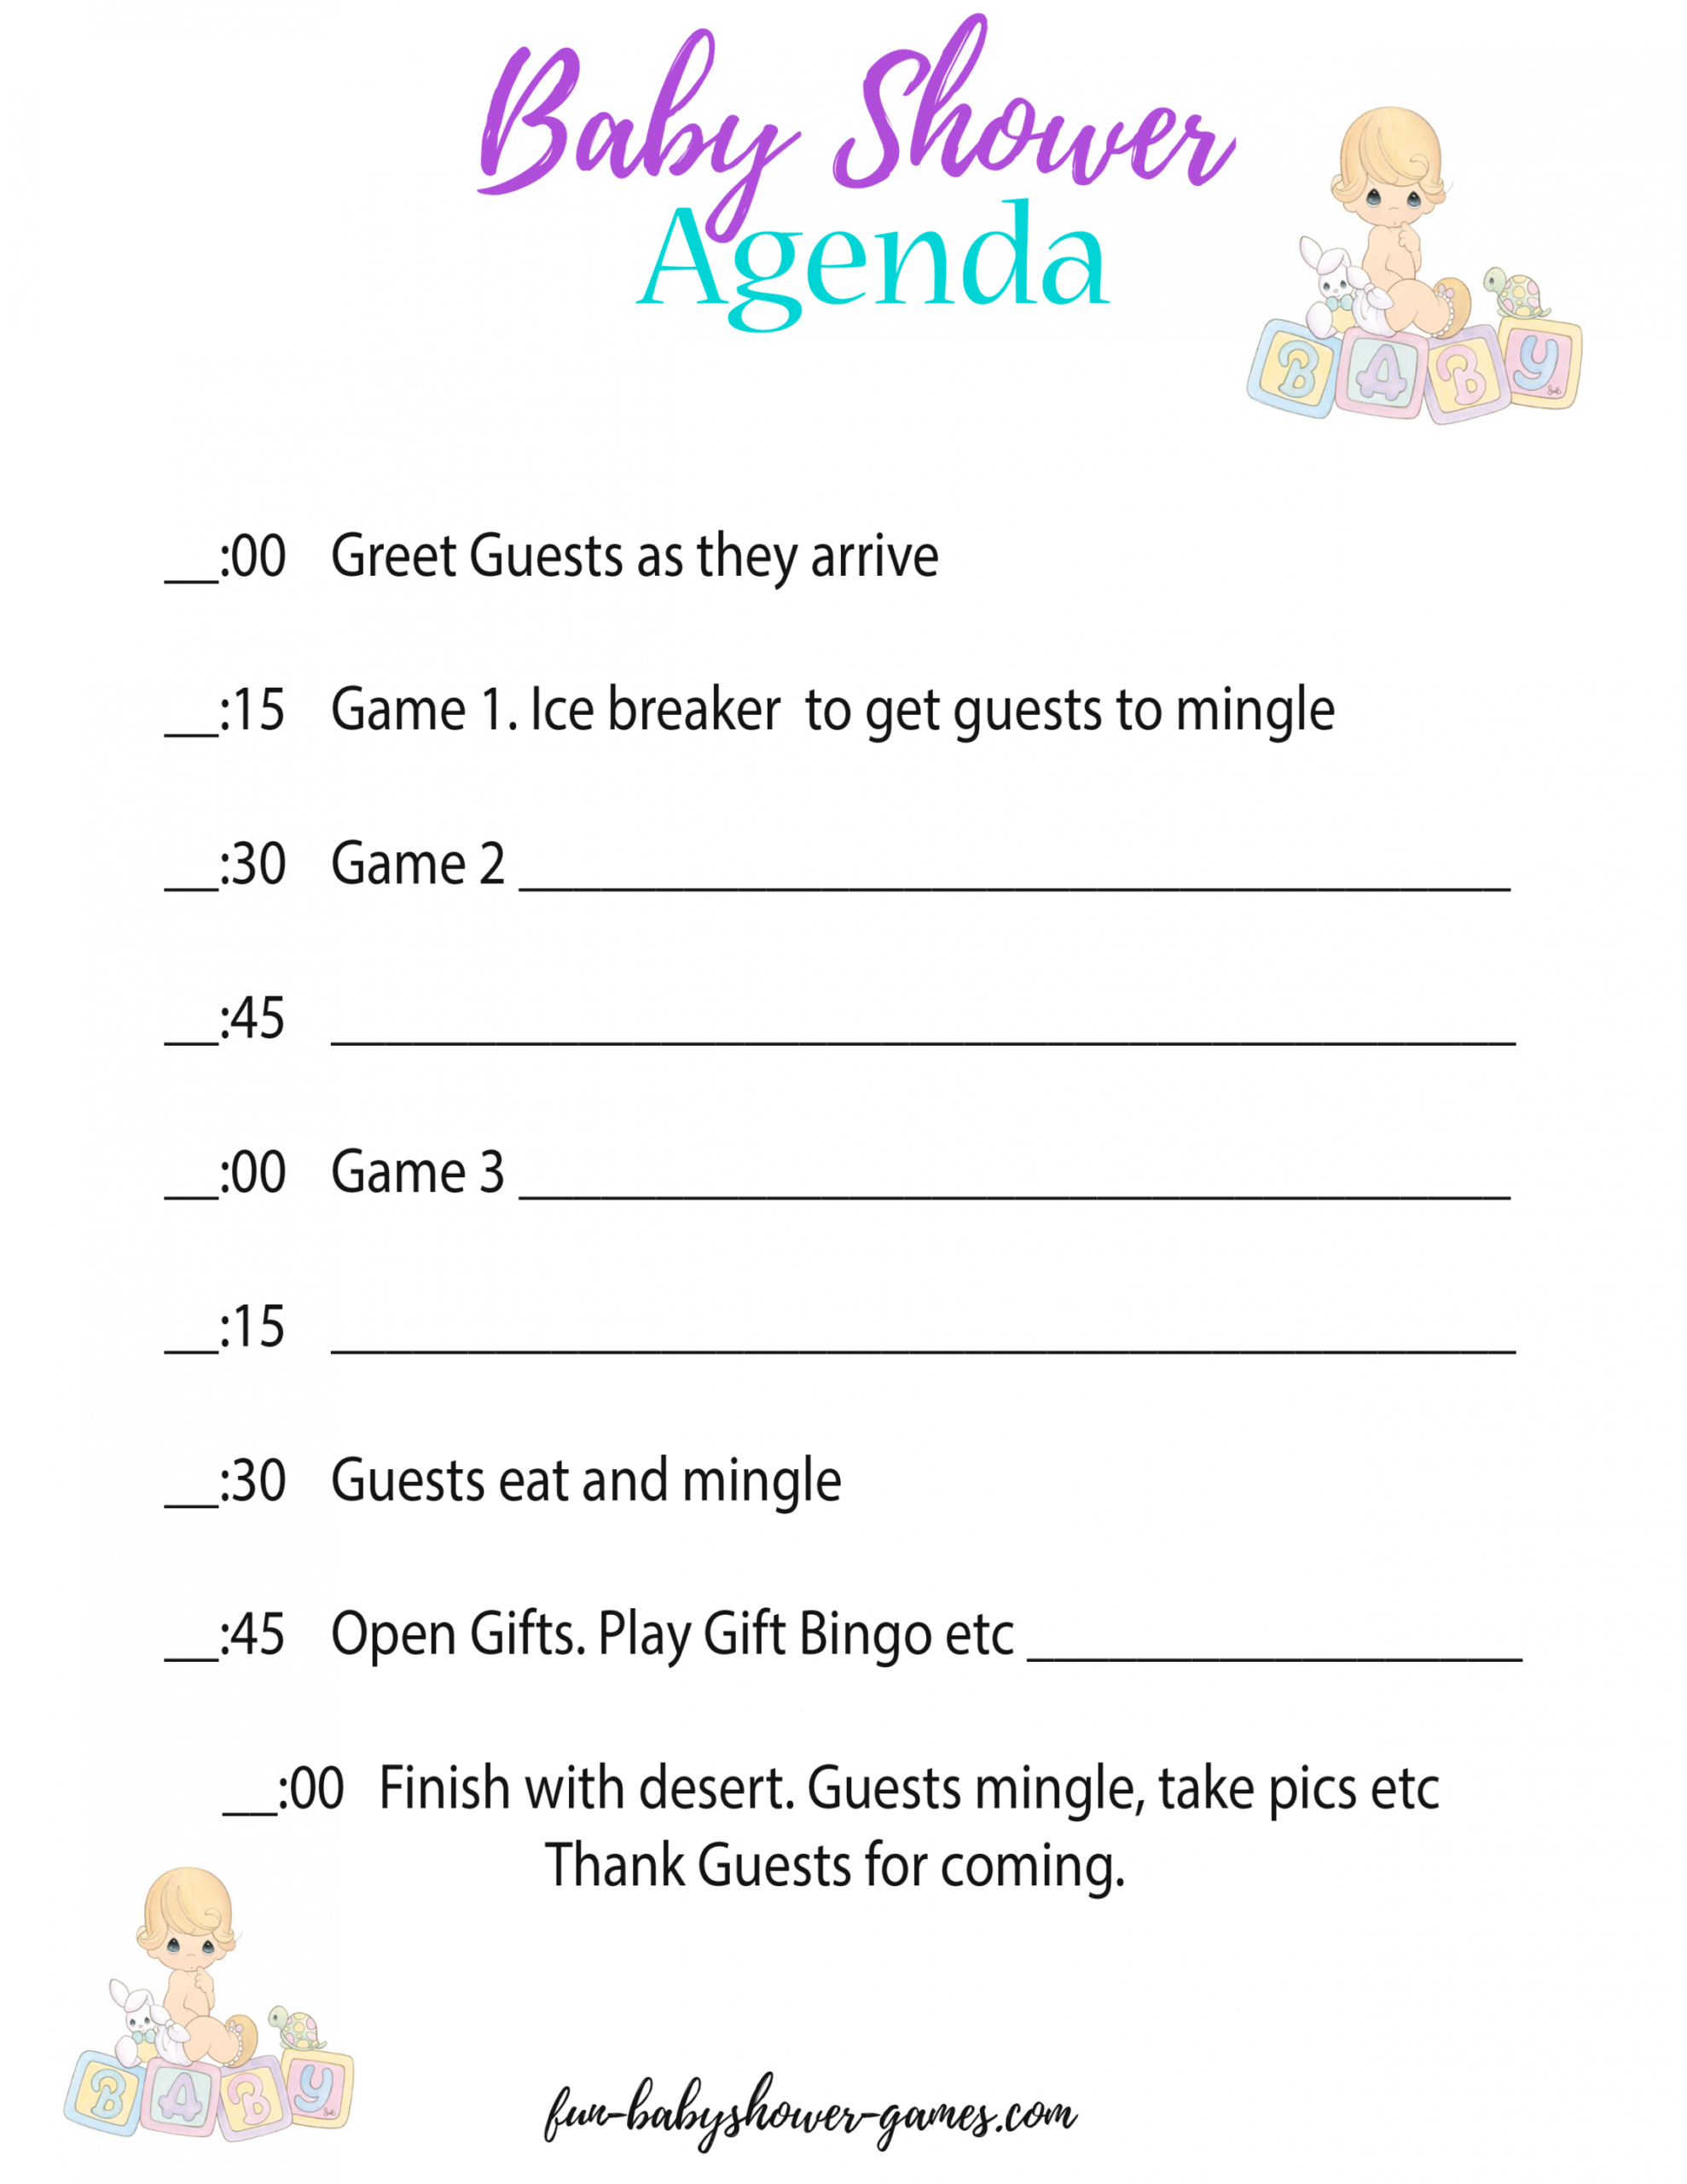 printable baby shower agenda a hostess secret weapon baby shower itinerary template example